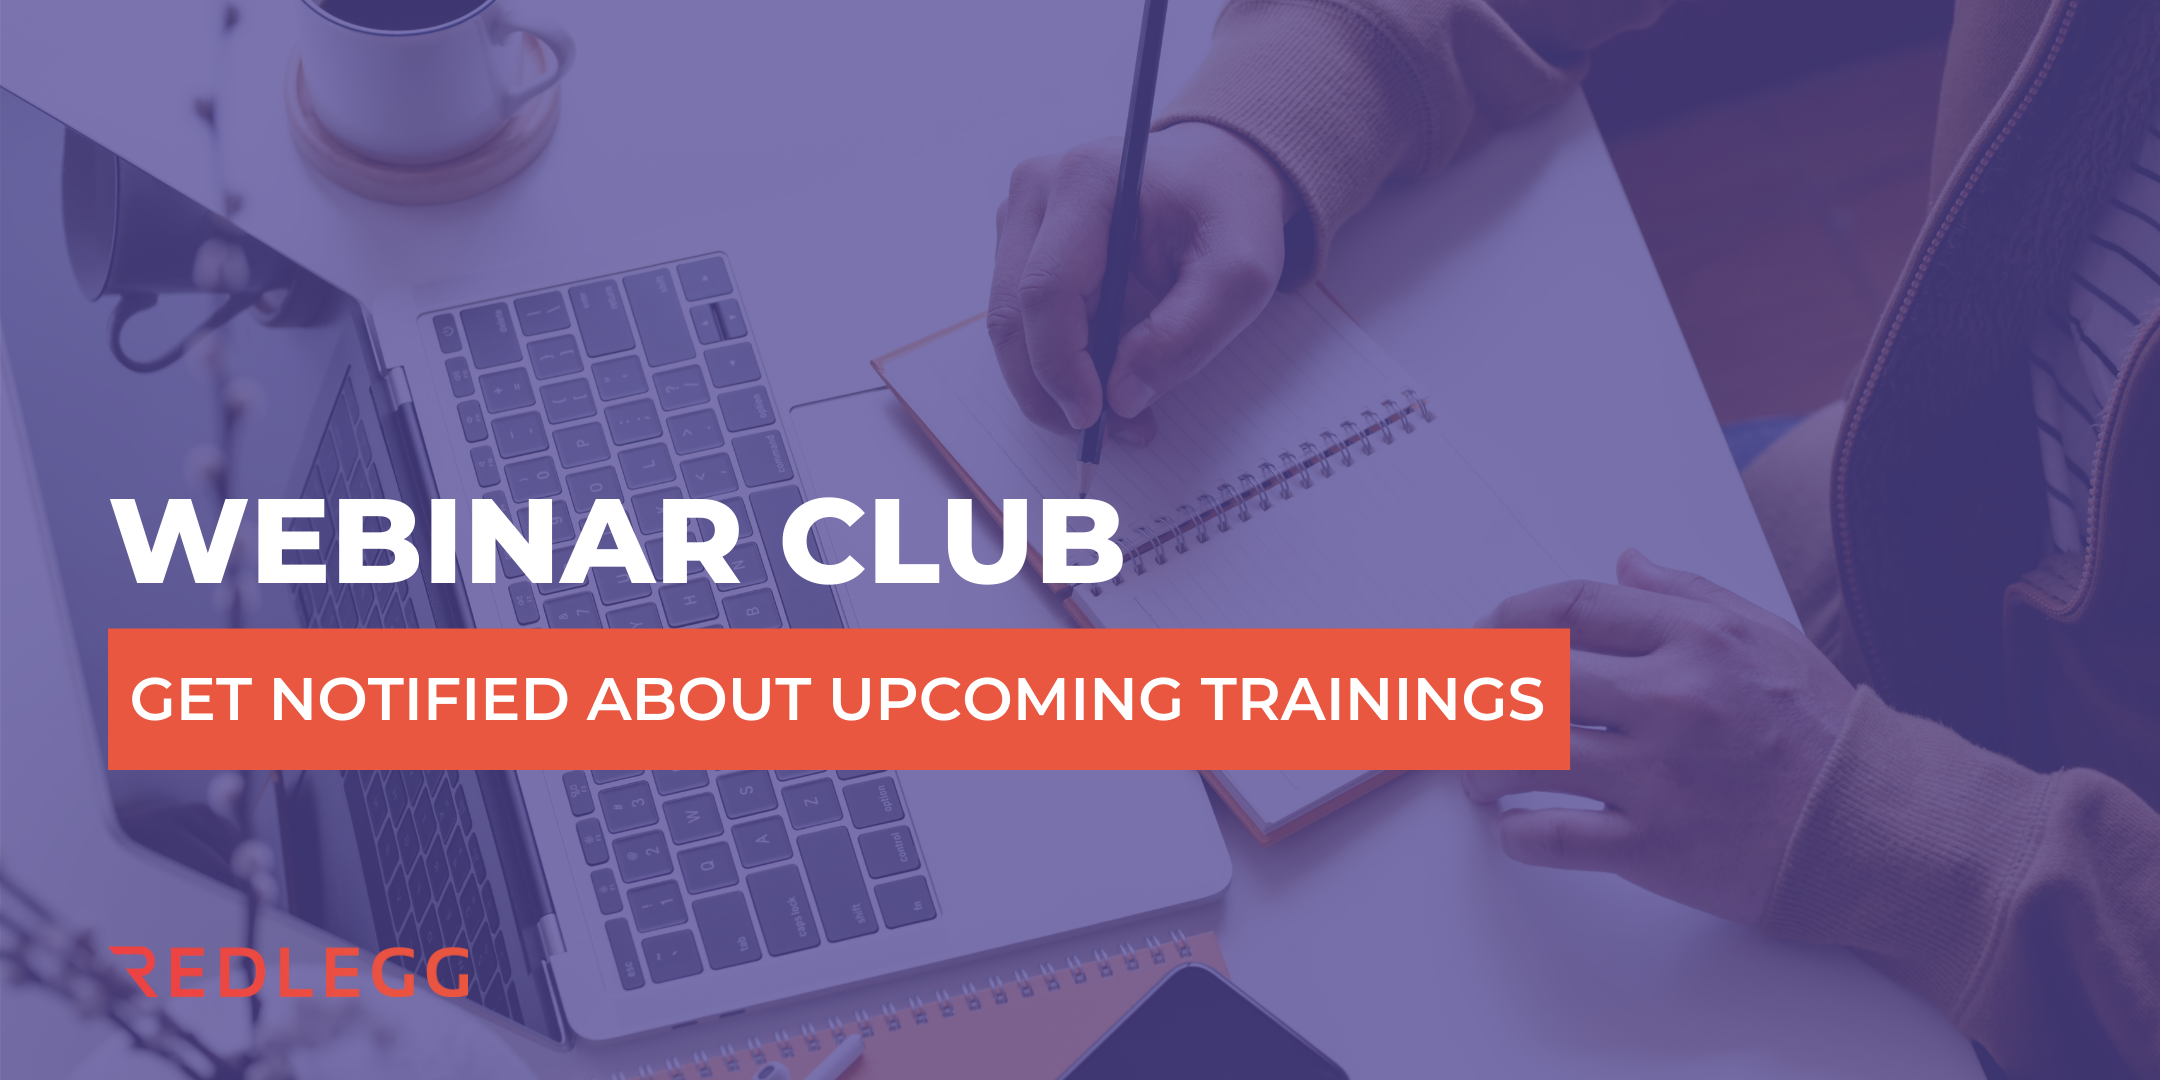 Events-Webinar-Club